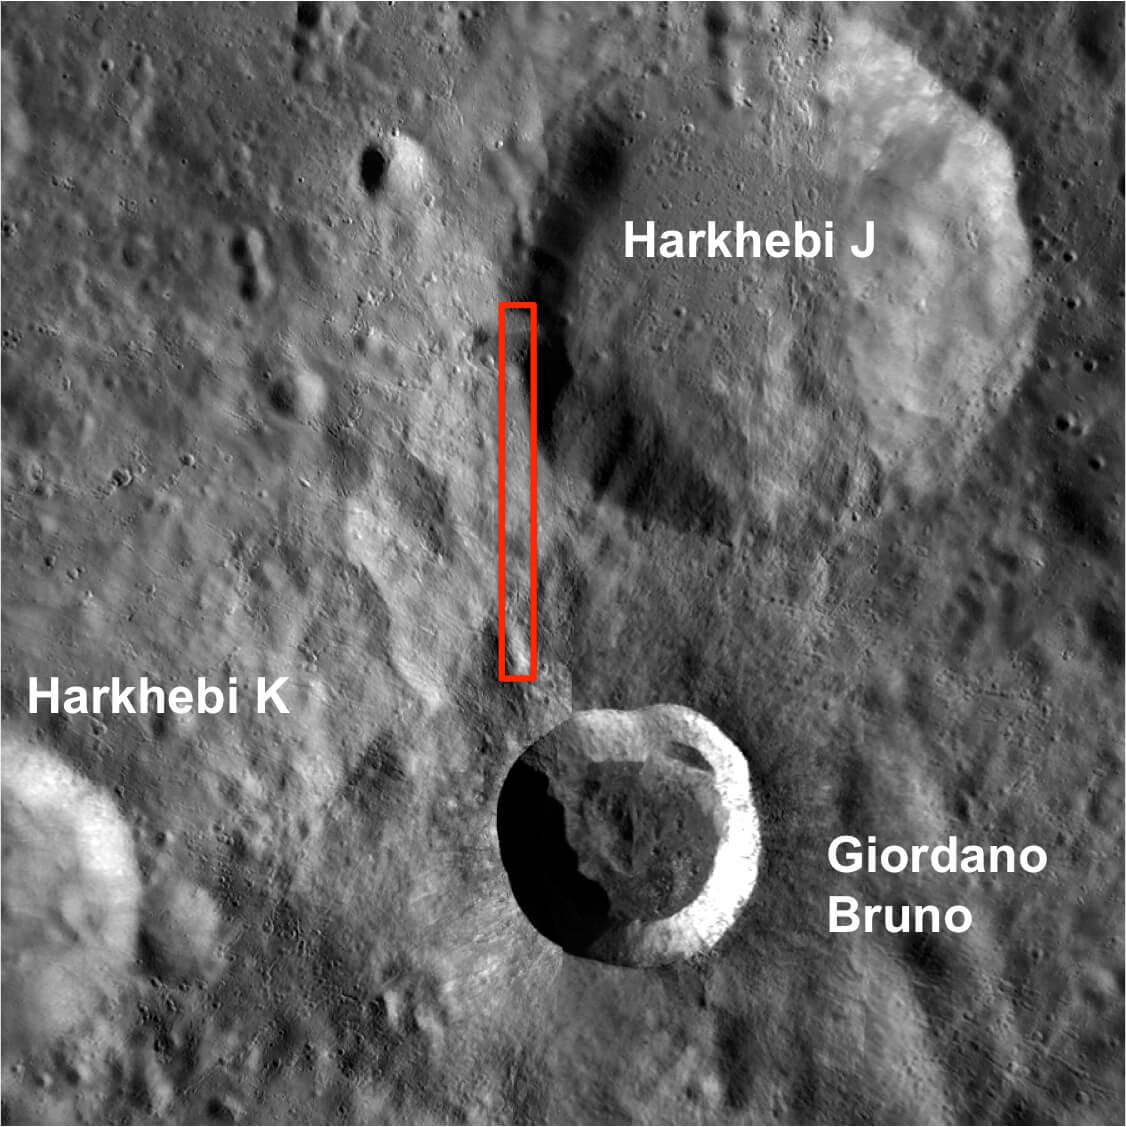 This NASA photo clearly shows the sharply defined Giodano Bruno crater between to much older neighbors.